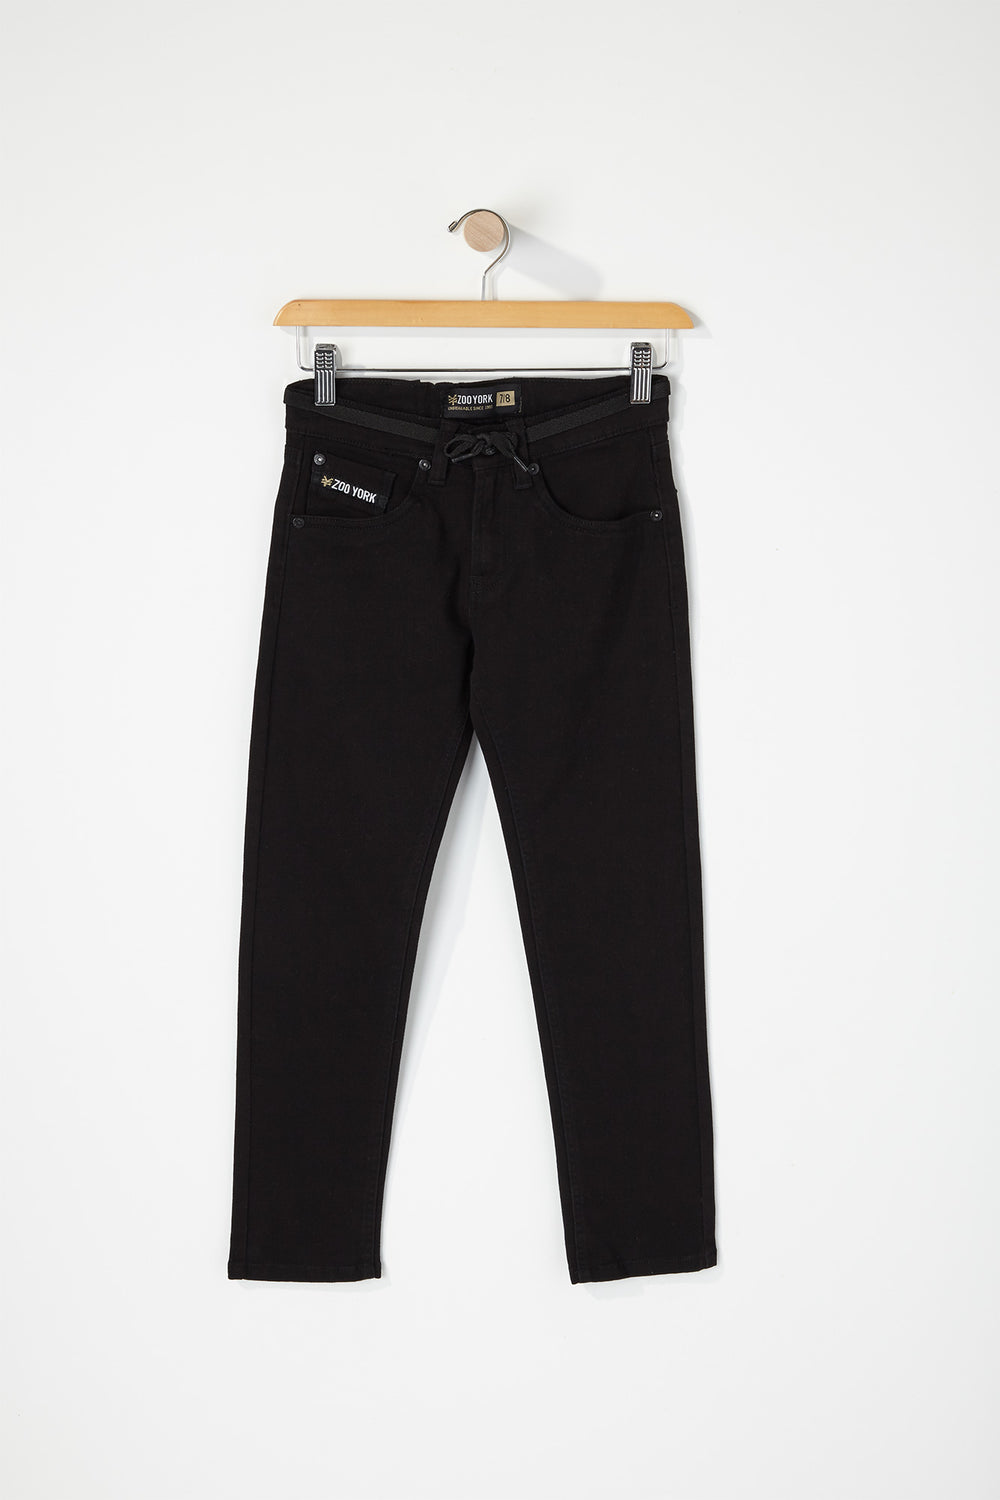 Zoo York Youth Stretch Skinny Jeans Black